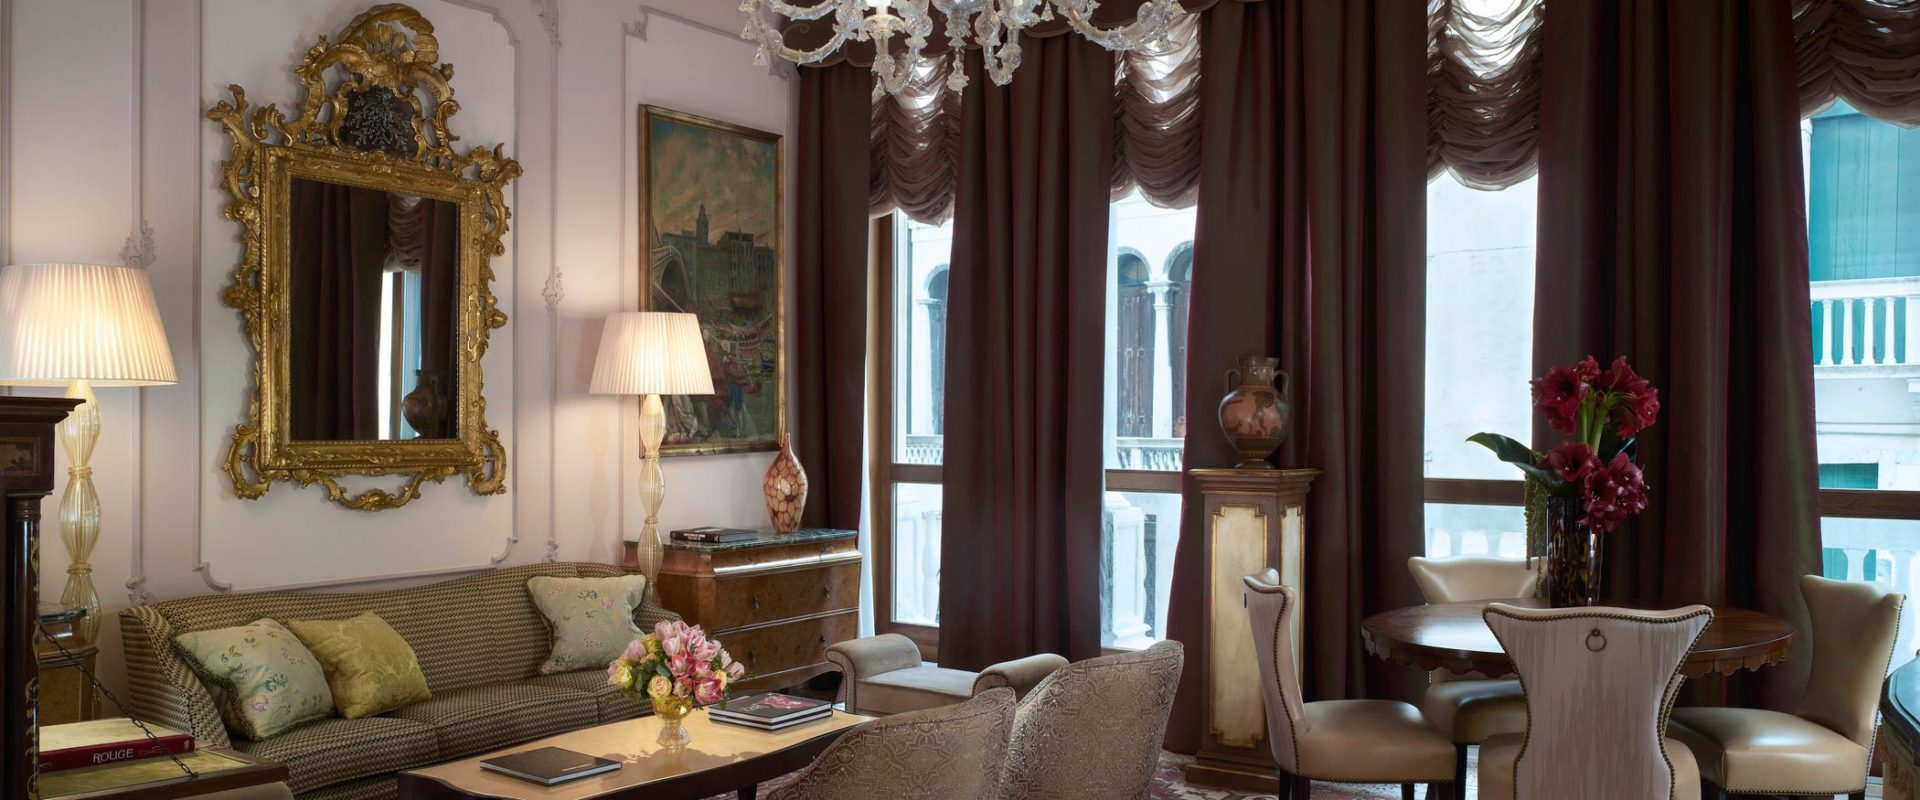 The-Griitti-Palace-Venice-Coppa-Volpi-Heritage-Suite